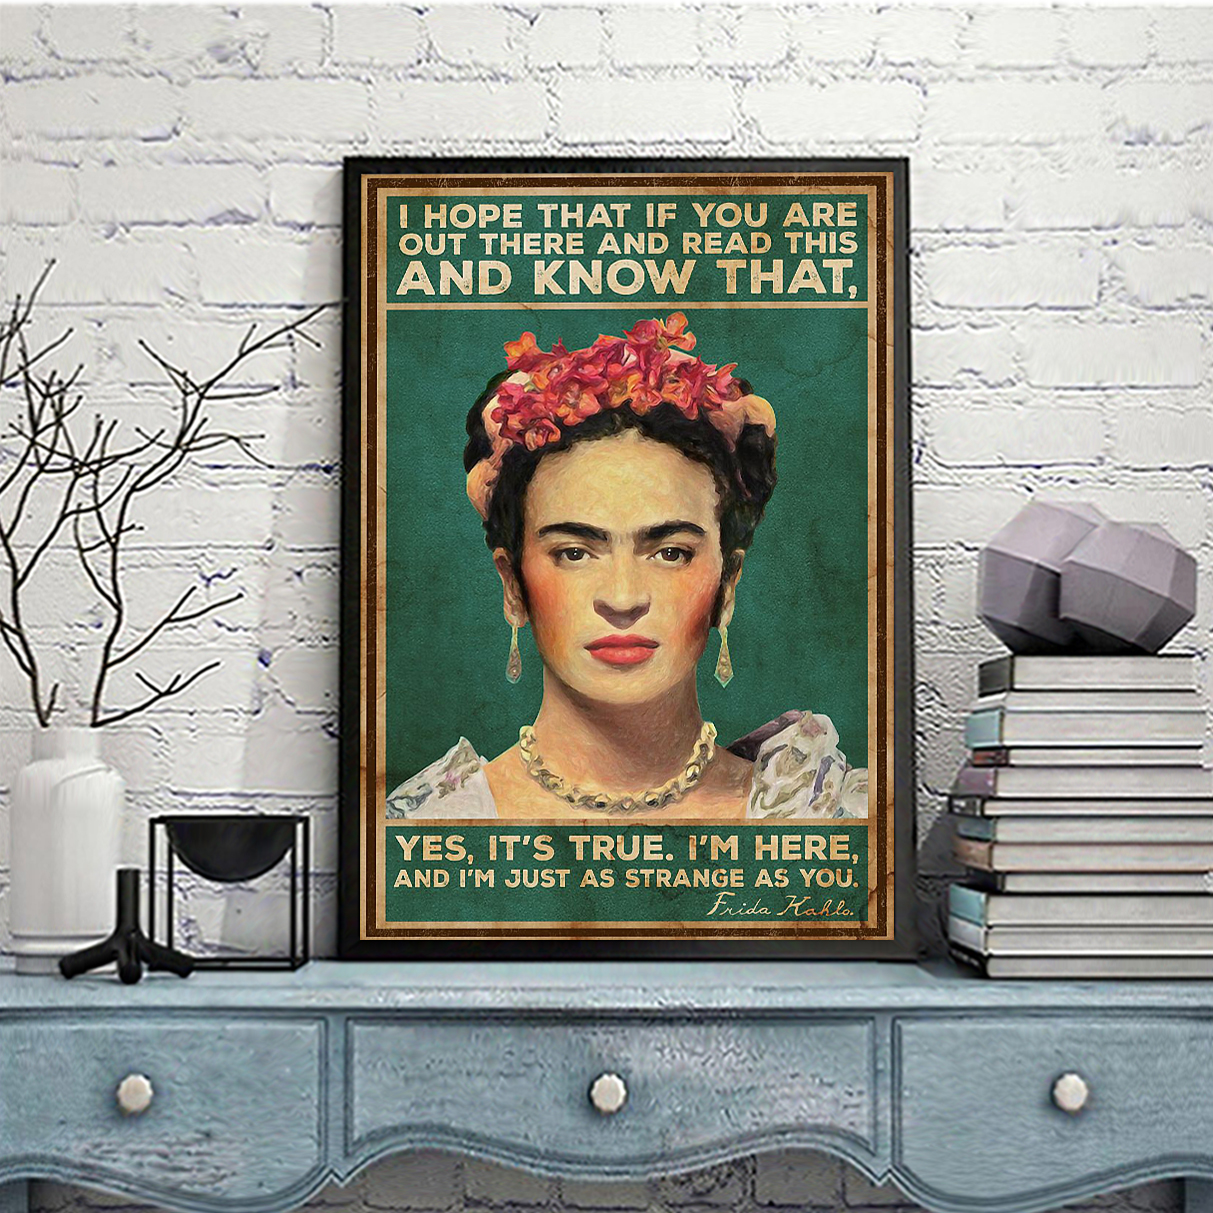 Frida kahlo I hope that if you are out there and read this and know that poster A2